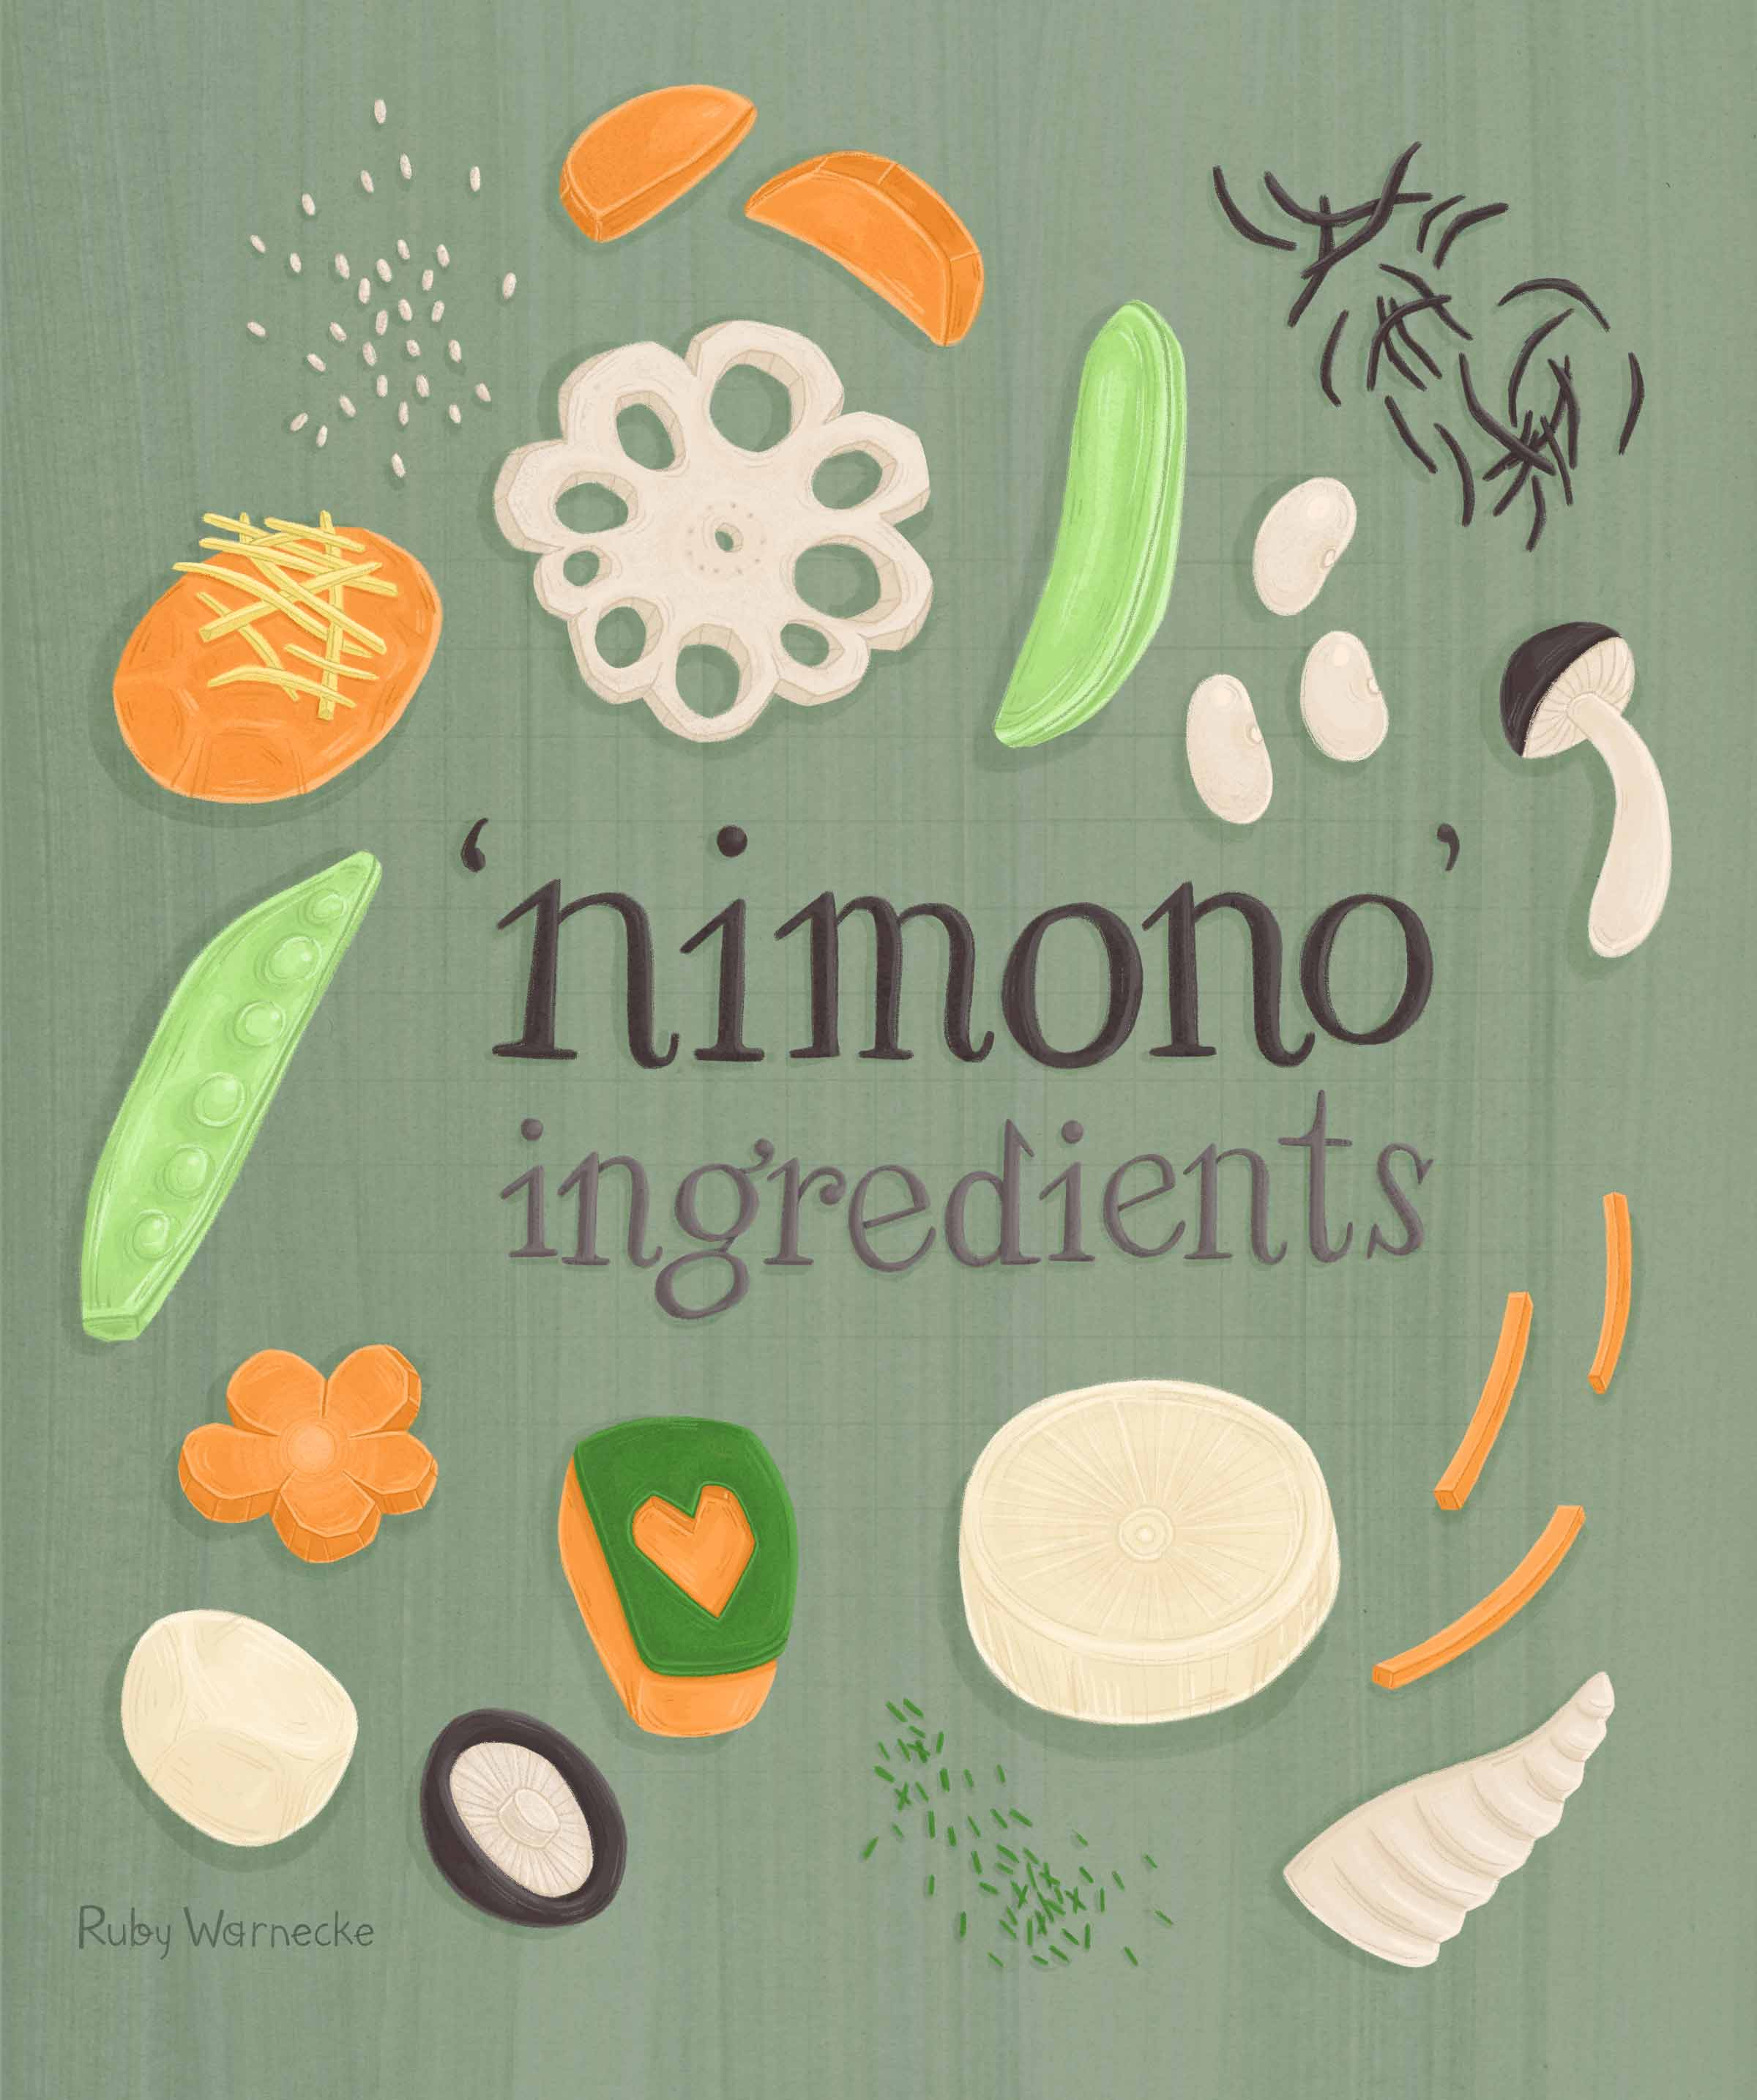 Copy of nimono ingredients